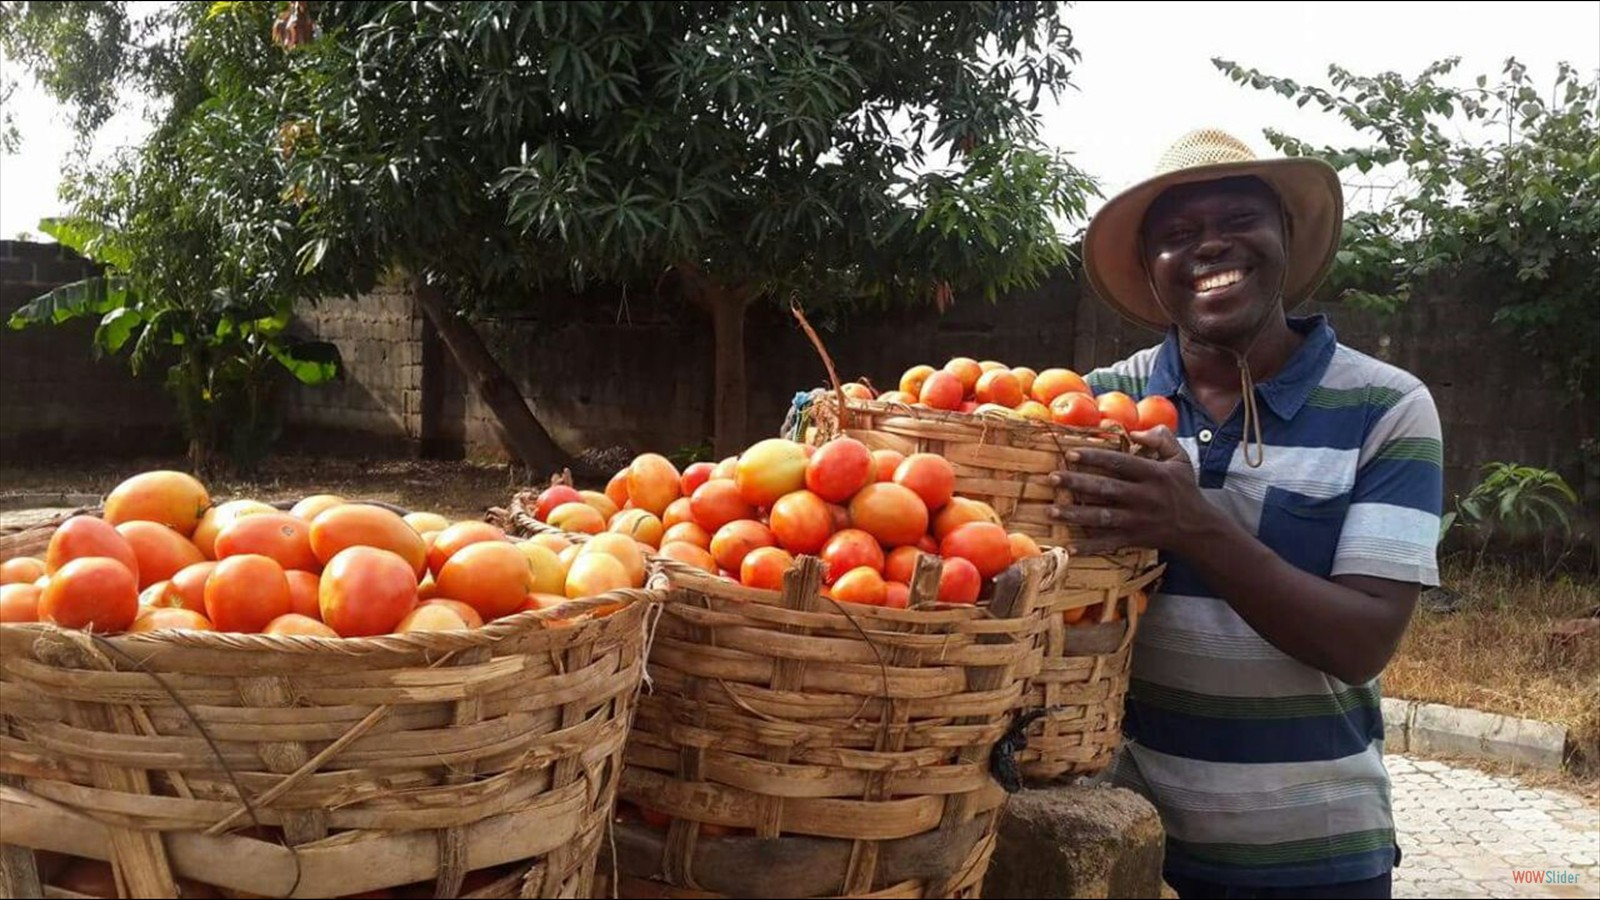 Tomato harvest from